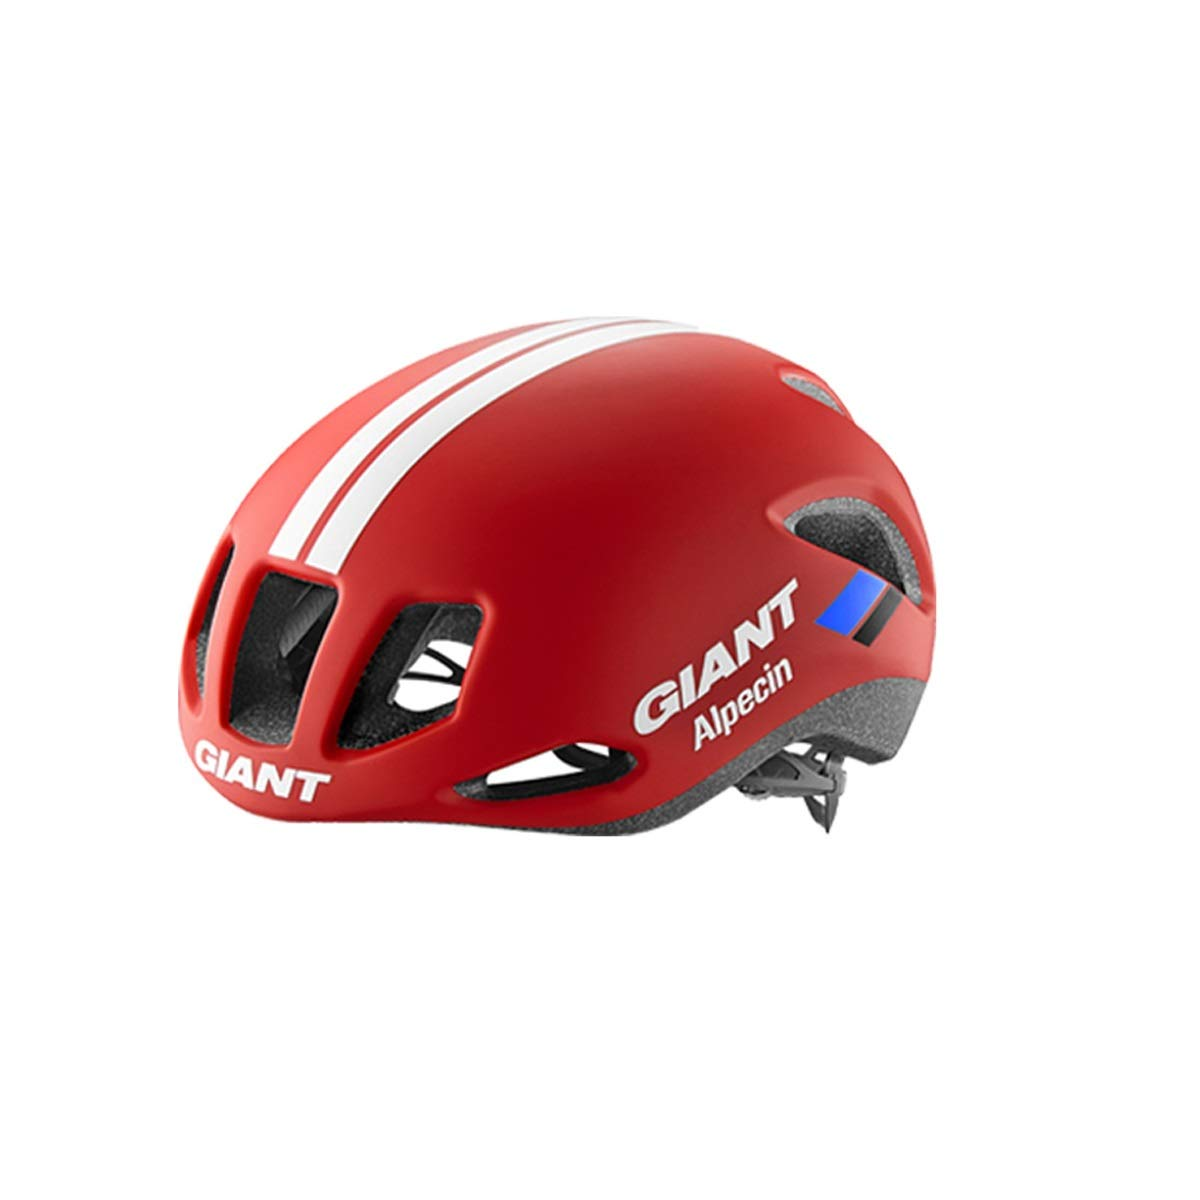 8haowenju Bicycle Helmet with in-Mold Reinforced Skeleton for Added Protection - Adult Size, Comfortable, Lightweight, Breathable(Red) (Color : Red, Size : XL(60-64 cm)) by 8haowenju (Image #1)